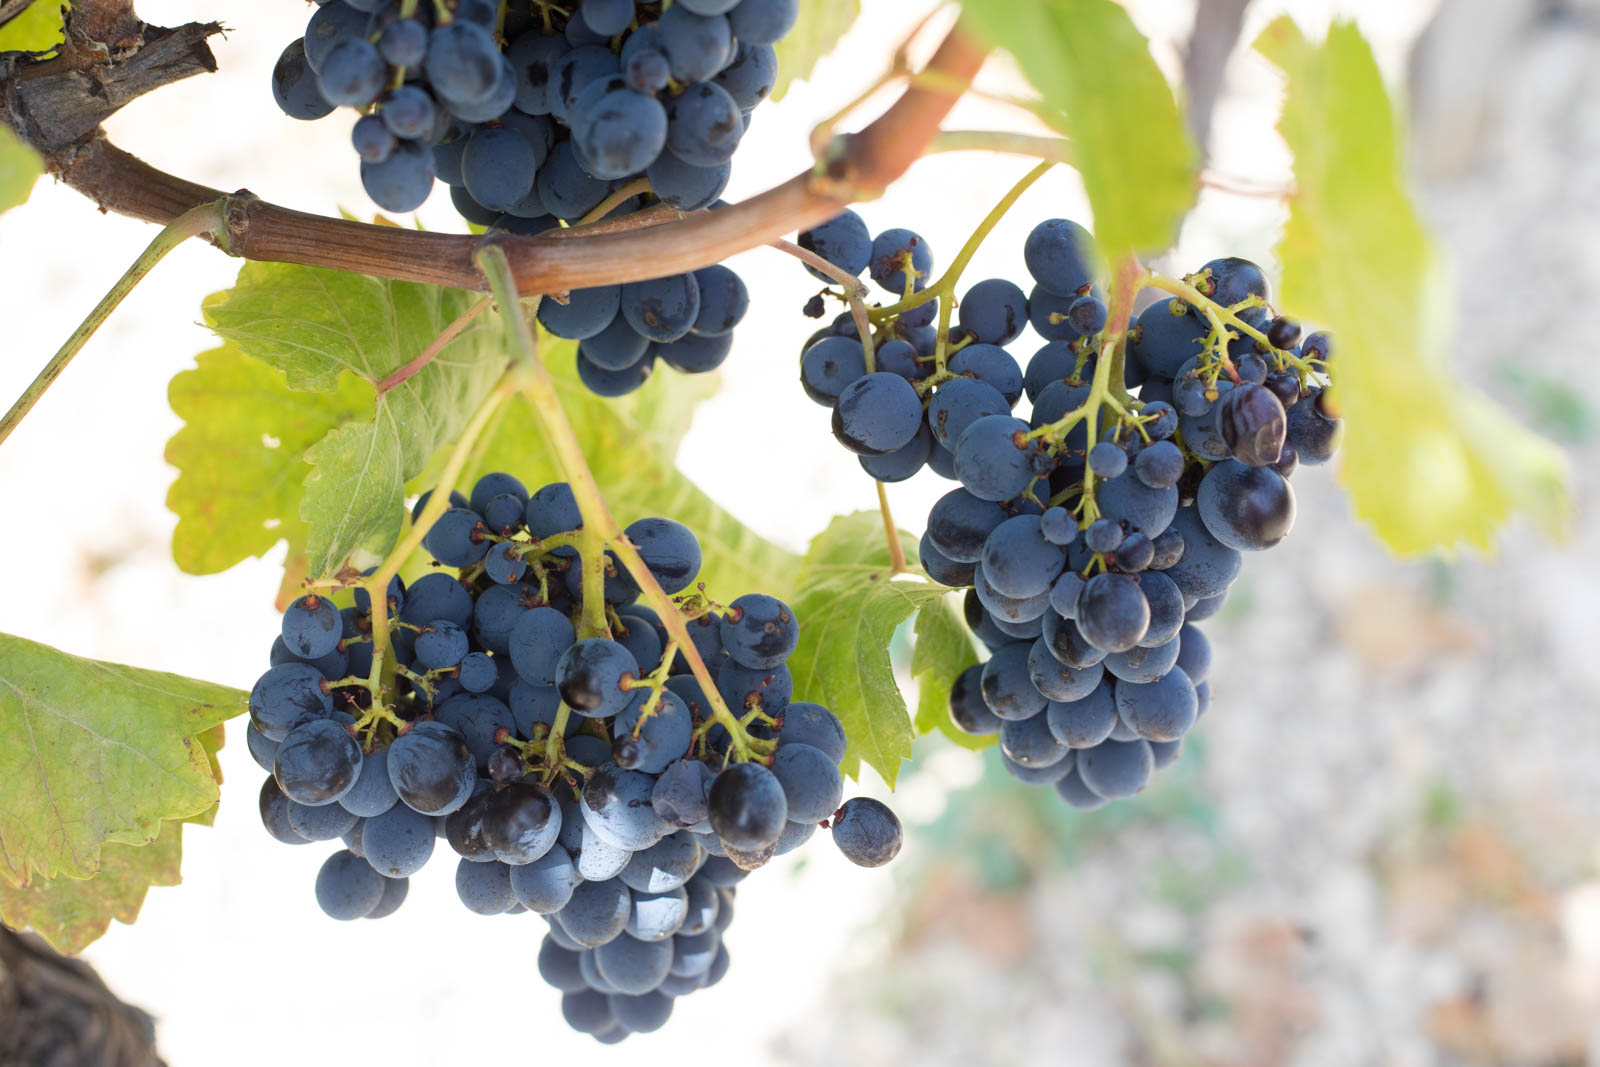 Nero d'Avola grapes growing in the vineyard of a co-op member. ©Kevin Day/Opening a Bottle